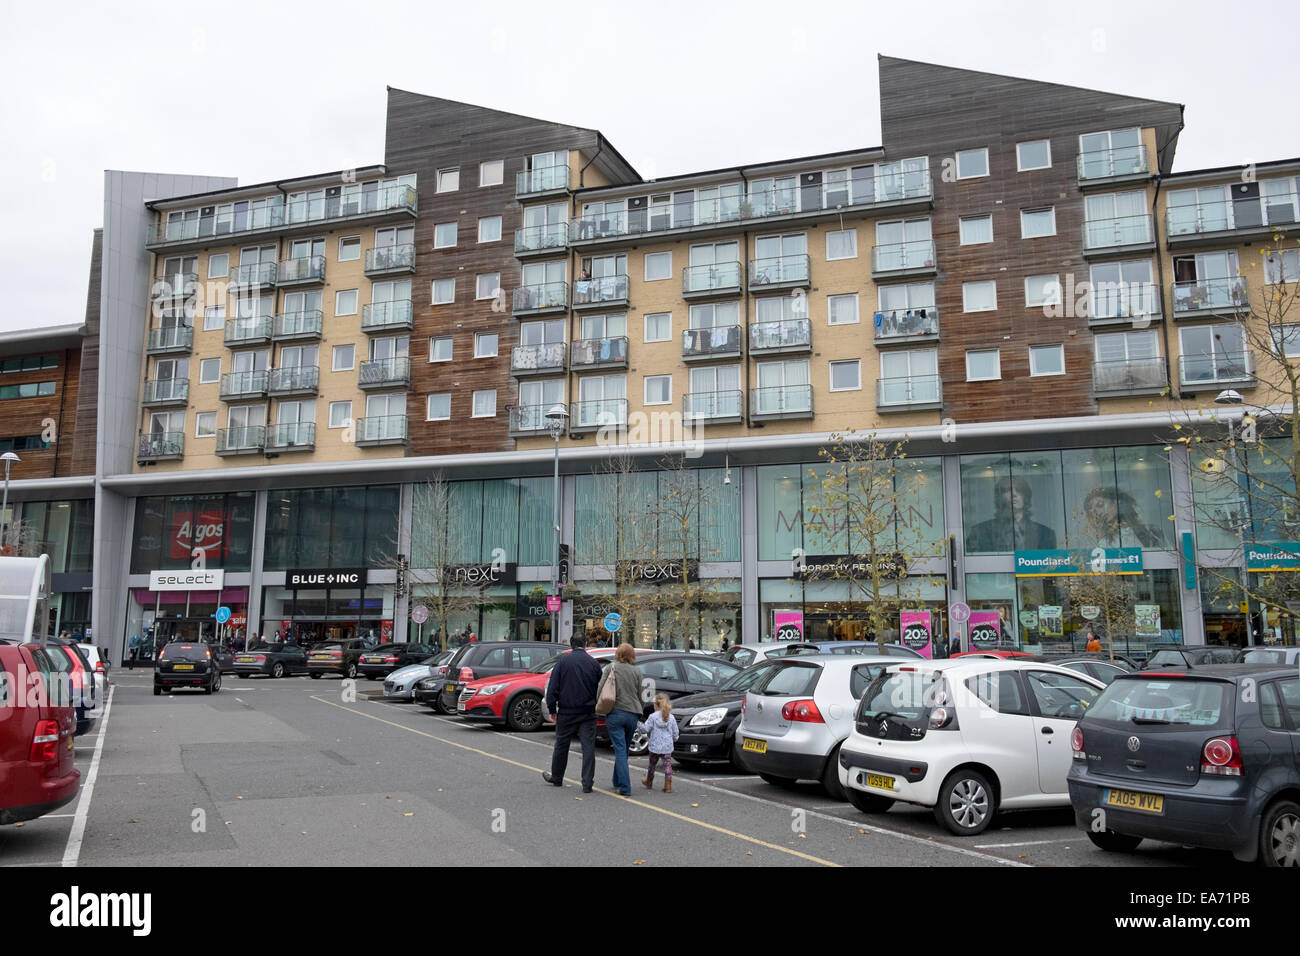 residential apartments above shops in the centre feltham